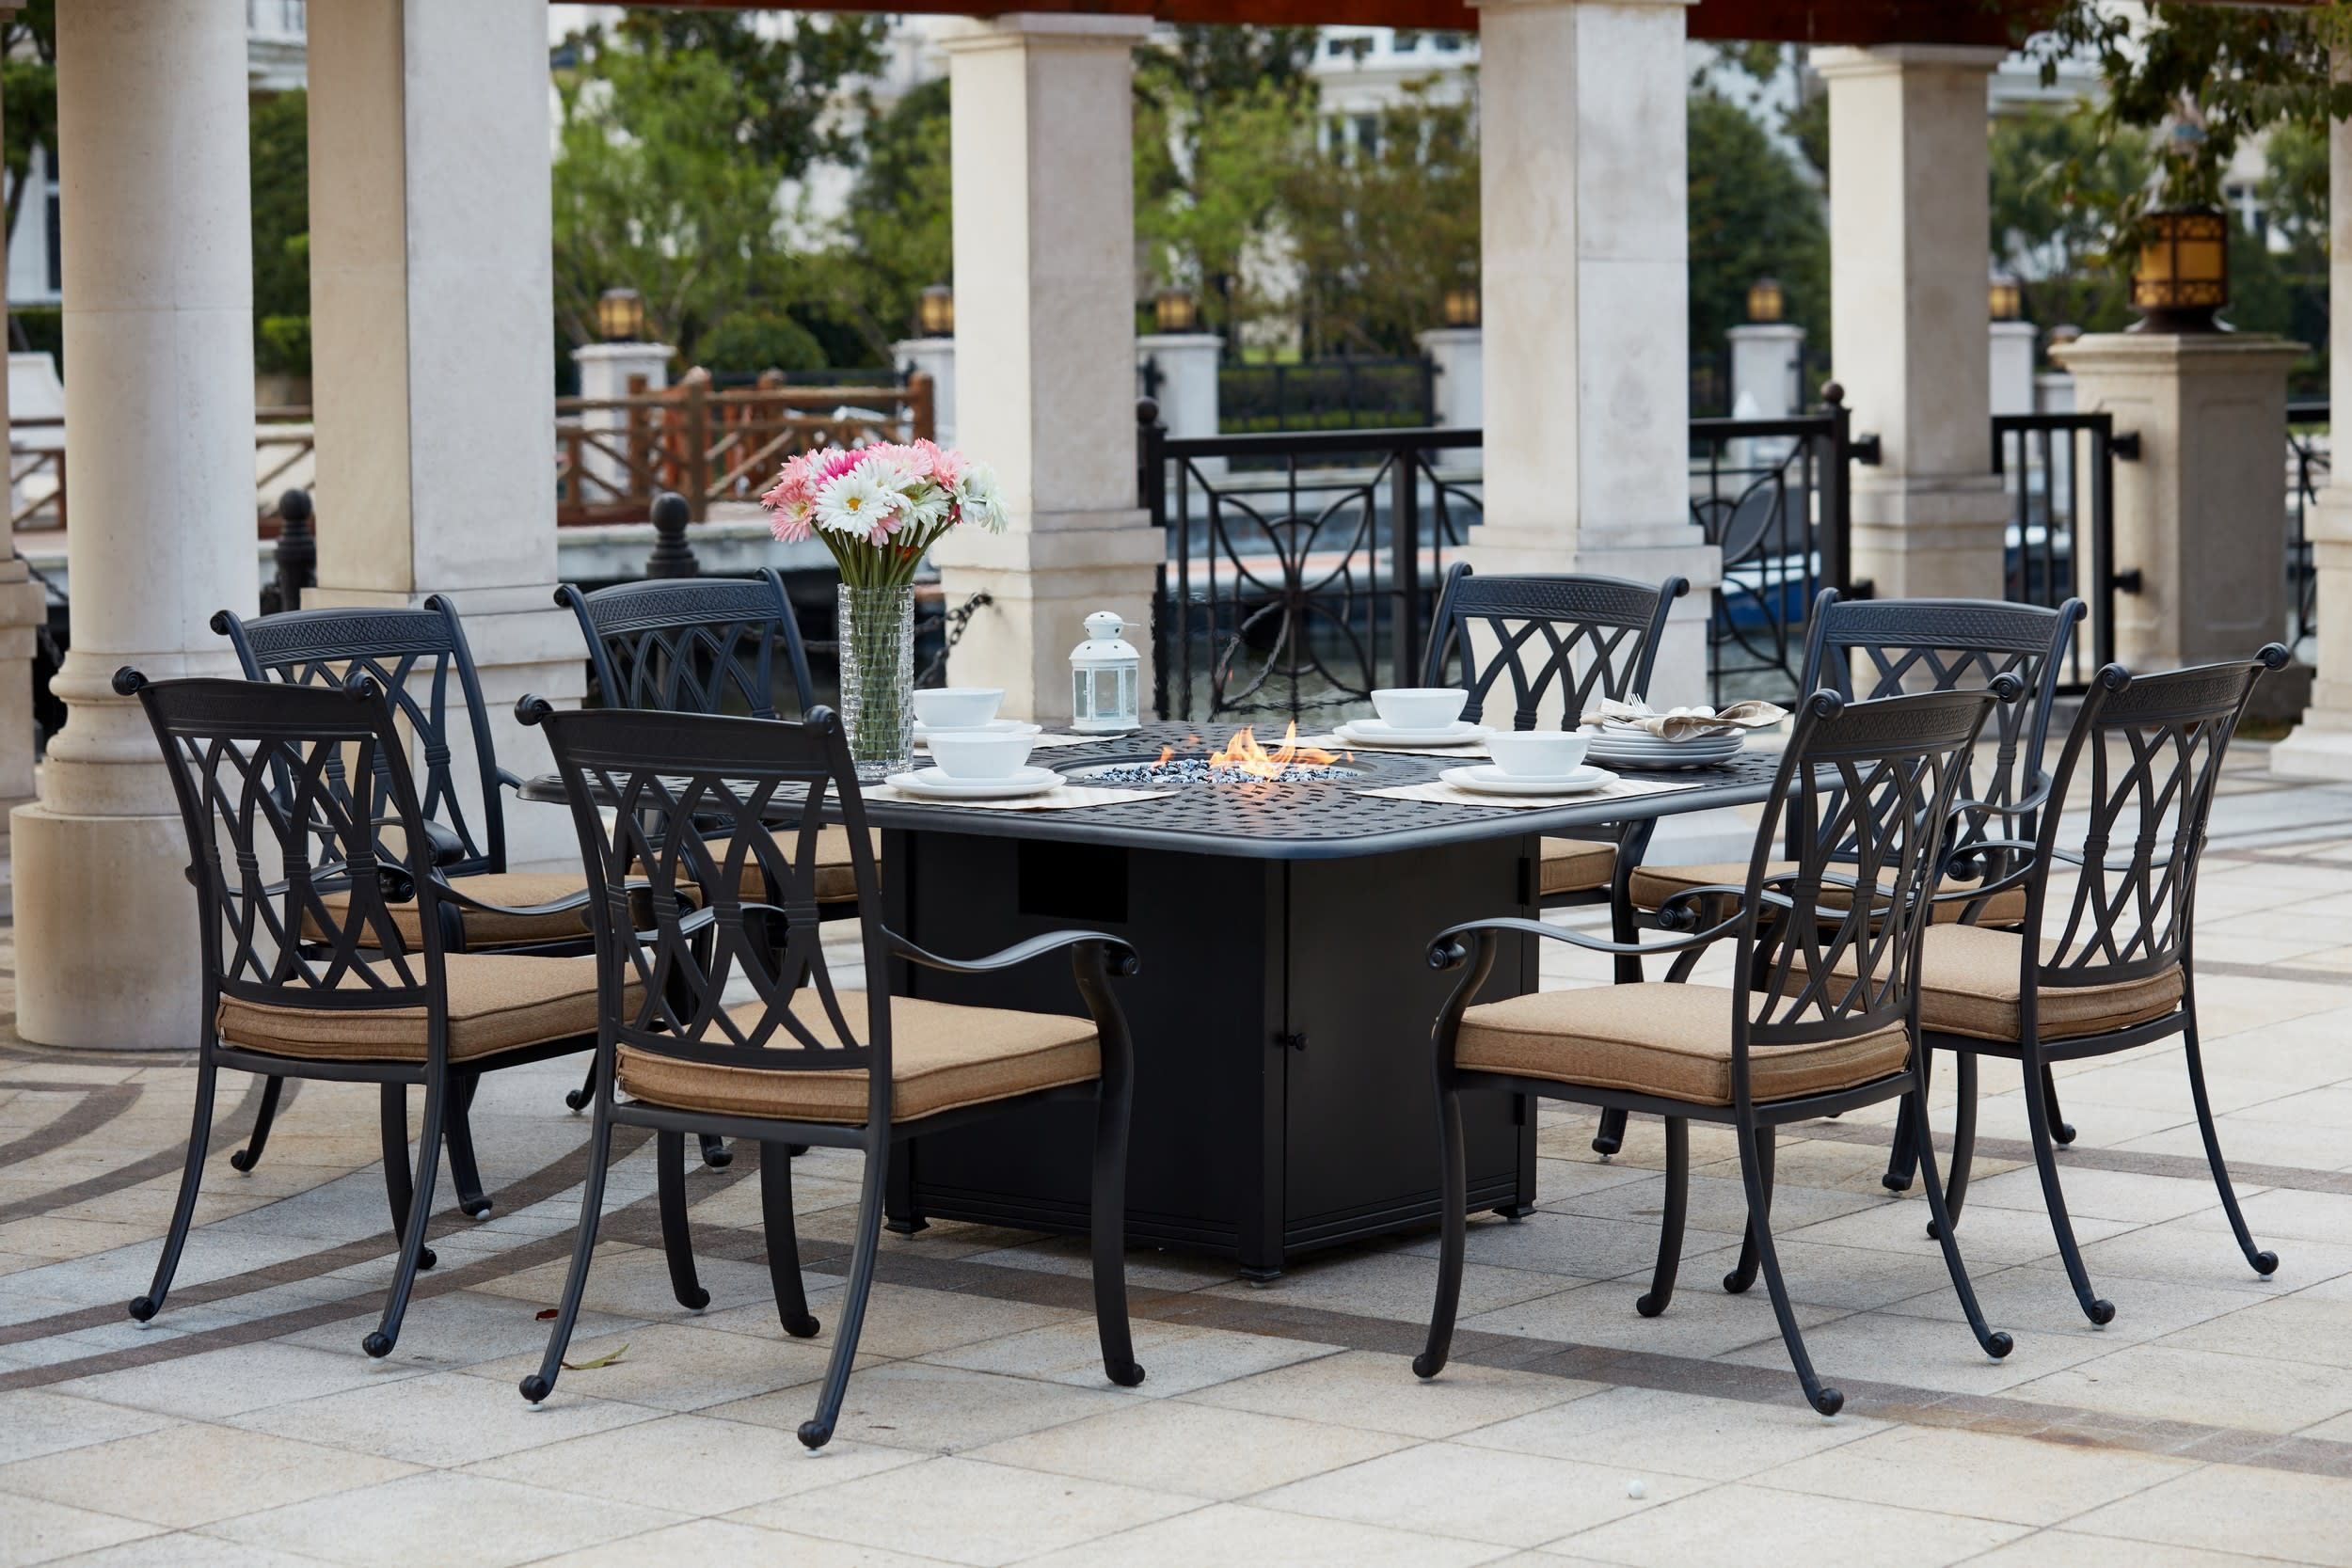 Picture of: Darlee Capri Cast Aluminum 9 Piece Dining Set With 64 Square Propane Fire Pit Dining Table G 201660 9pc 60gw Goedekers Com